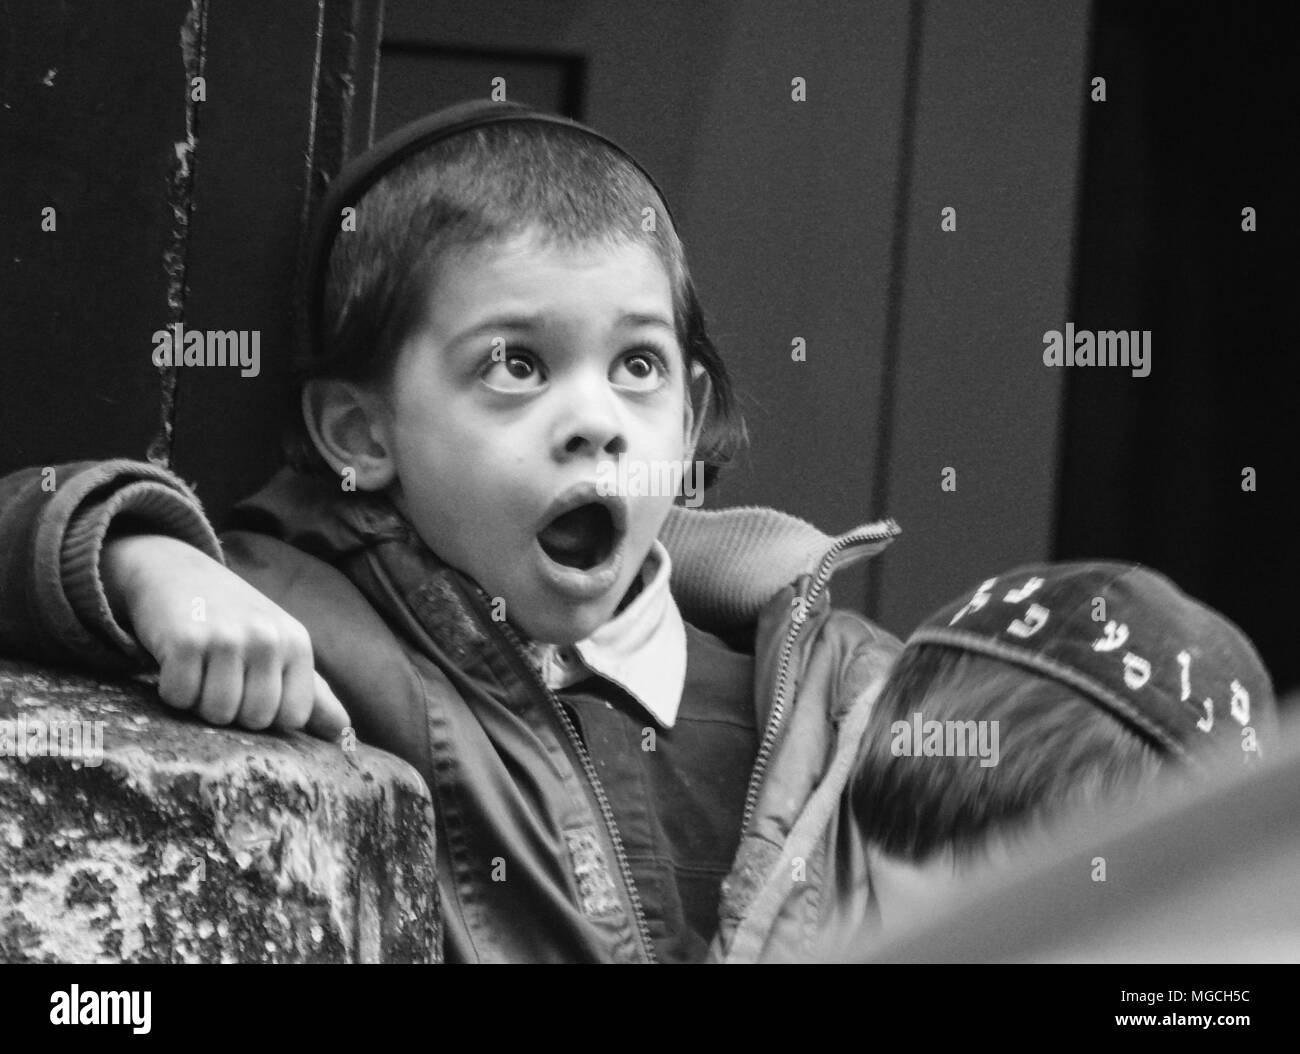 Young Jewish boy wearing kippah, looking up with shocked expression, mouth open, black and white, New York City, USA - Stock Image